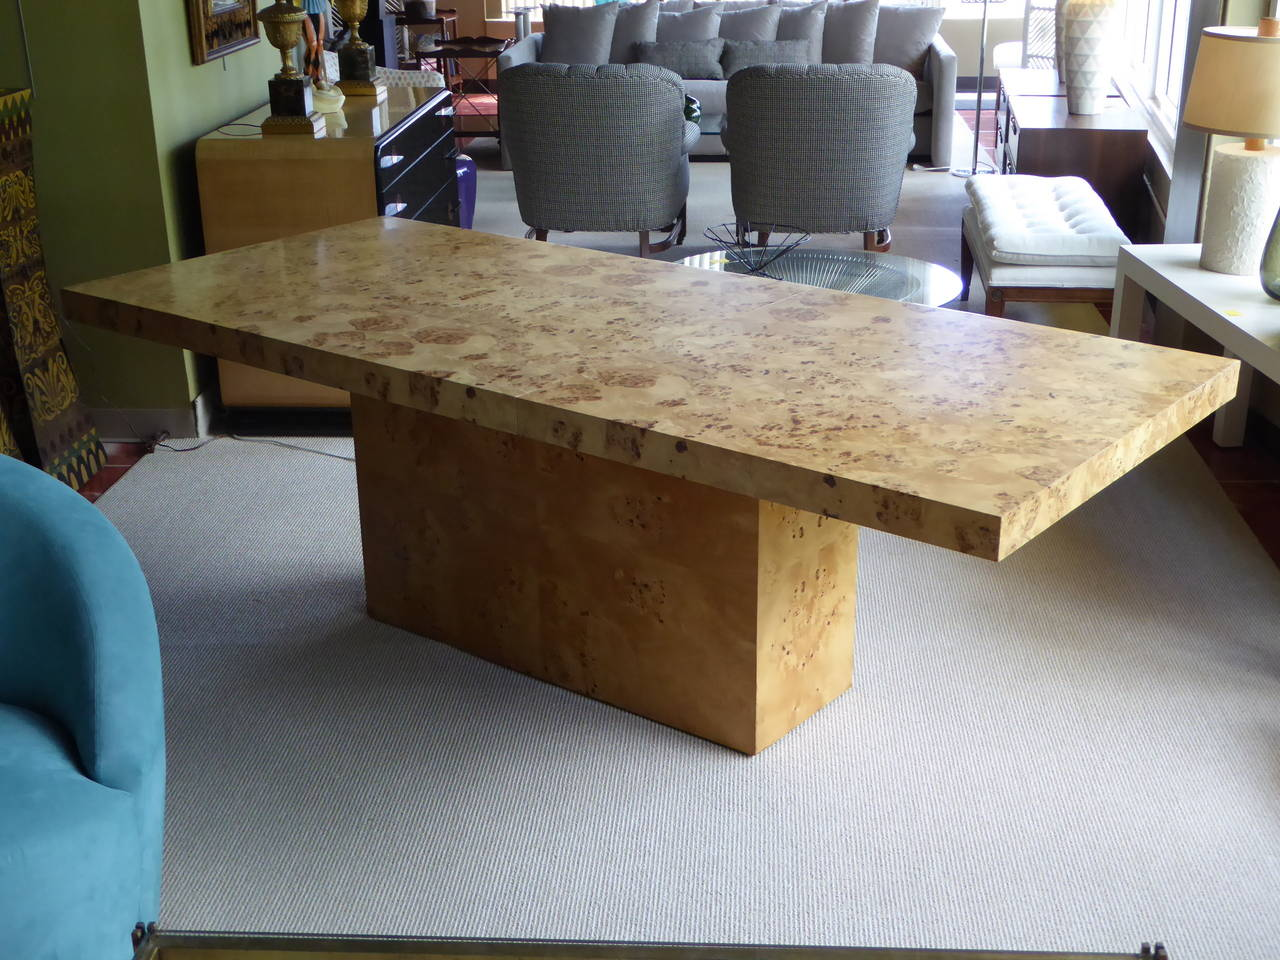 "Beautifully modern with strong simple lines, this olive burl wood dining table makes a statement. Wonderfully figured woods add exotic flair. Has one 18"" extension leaf that stores inside base. Very good condition with minor rub area on one corner."